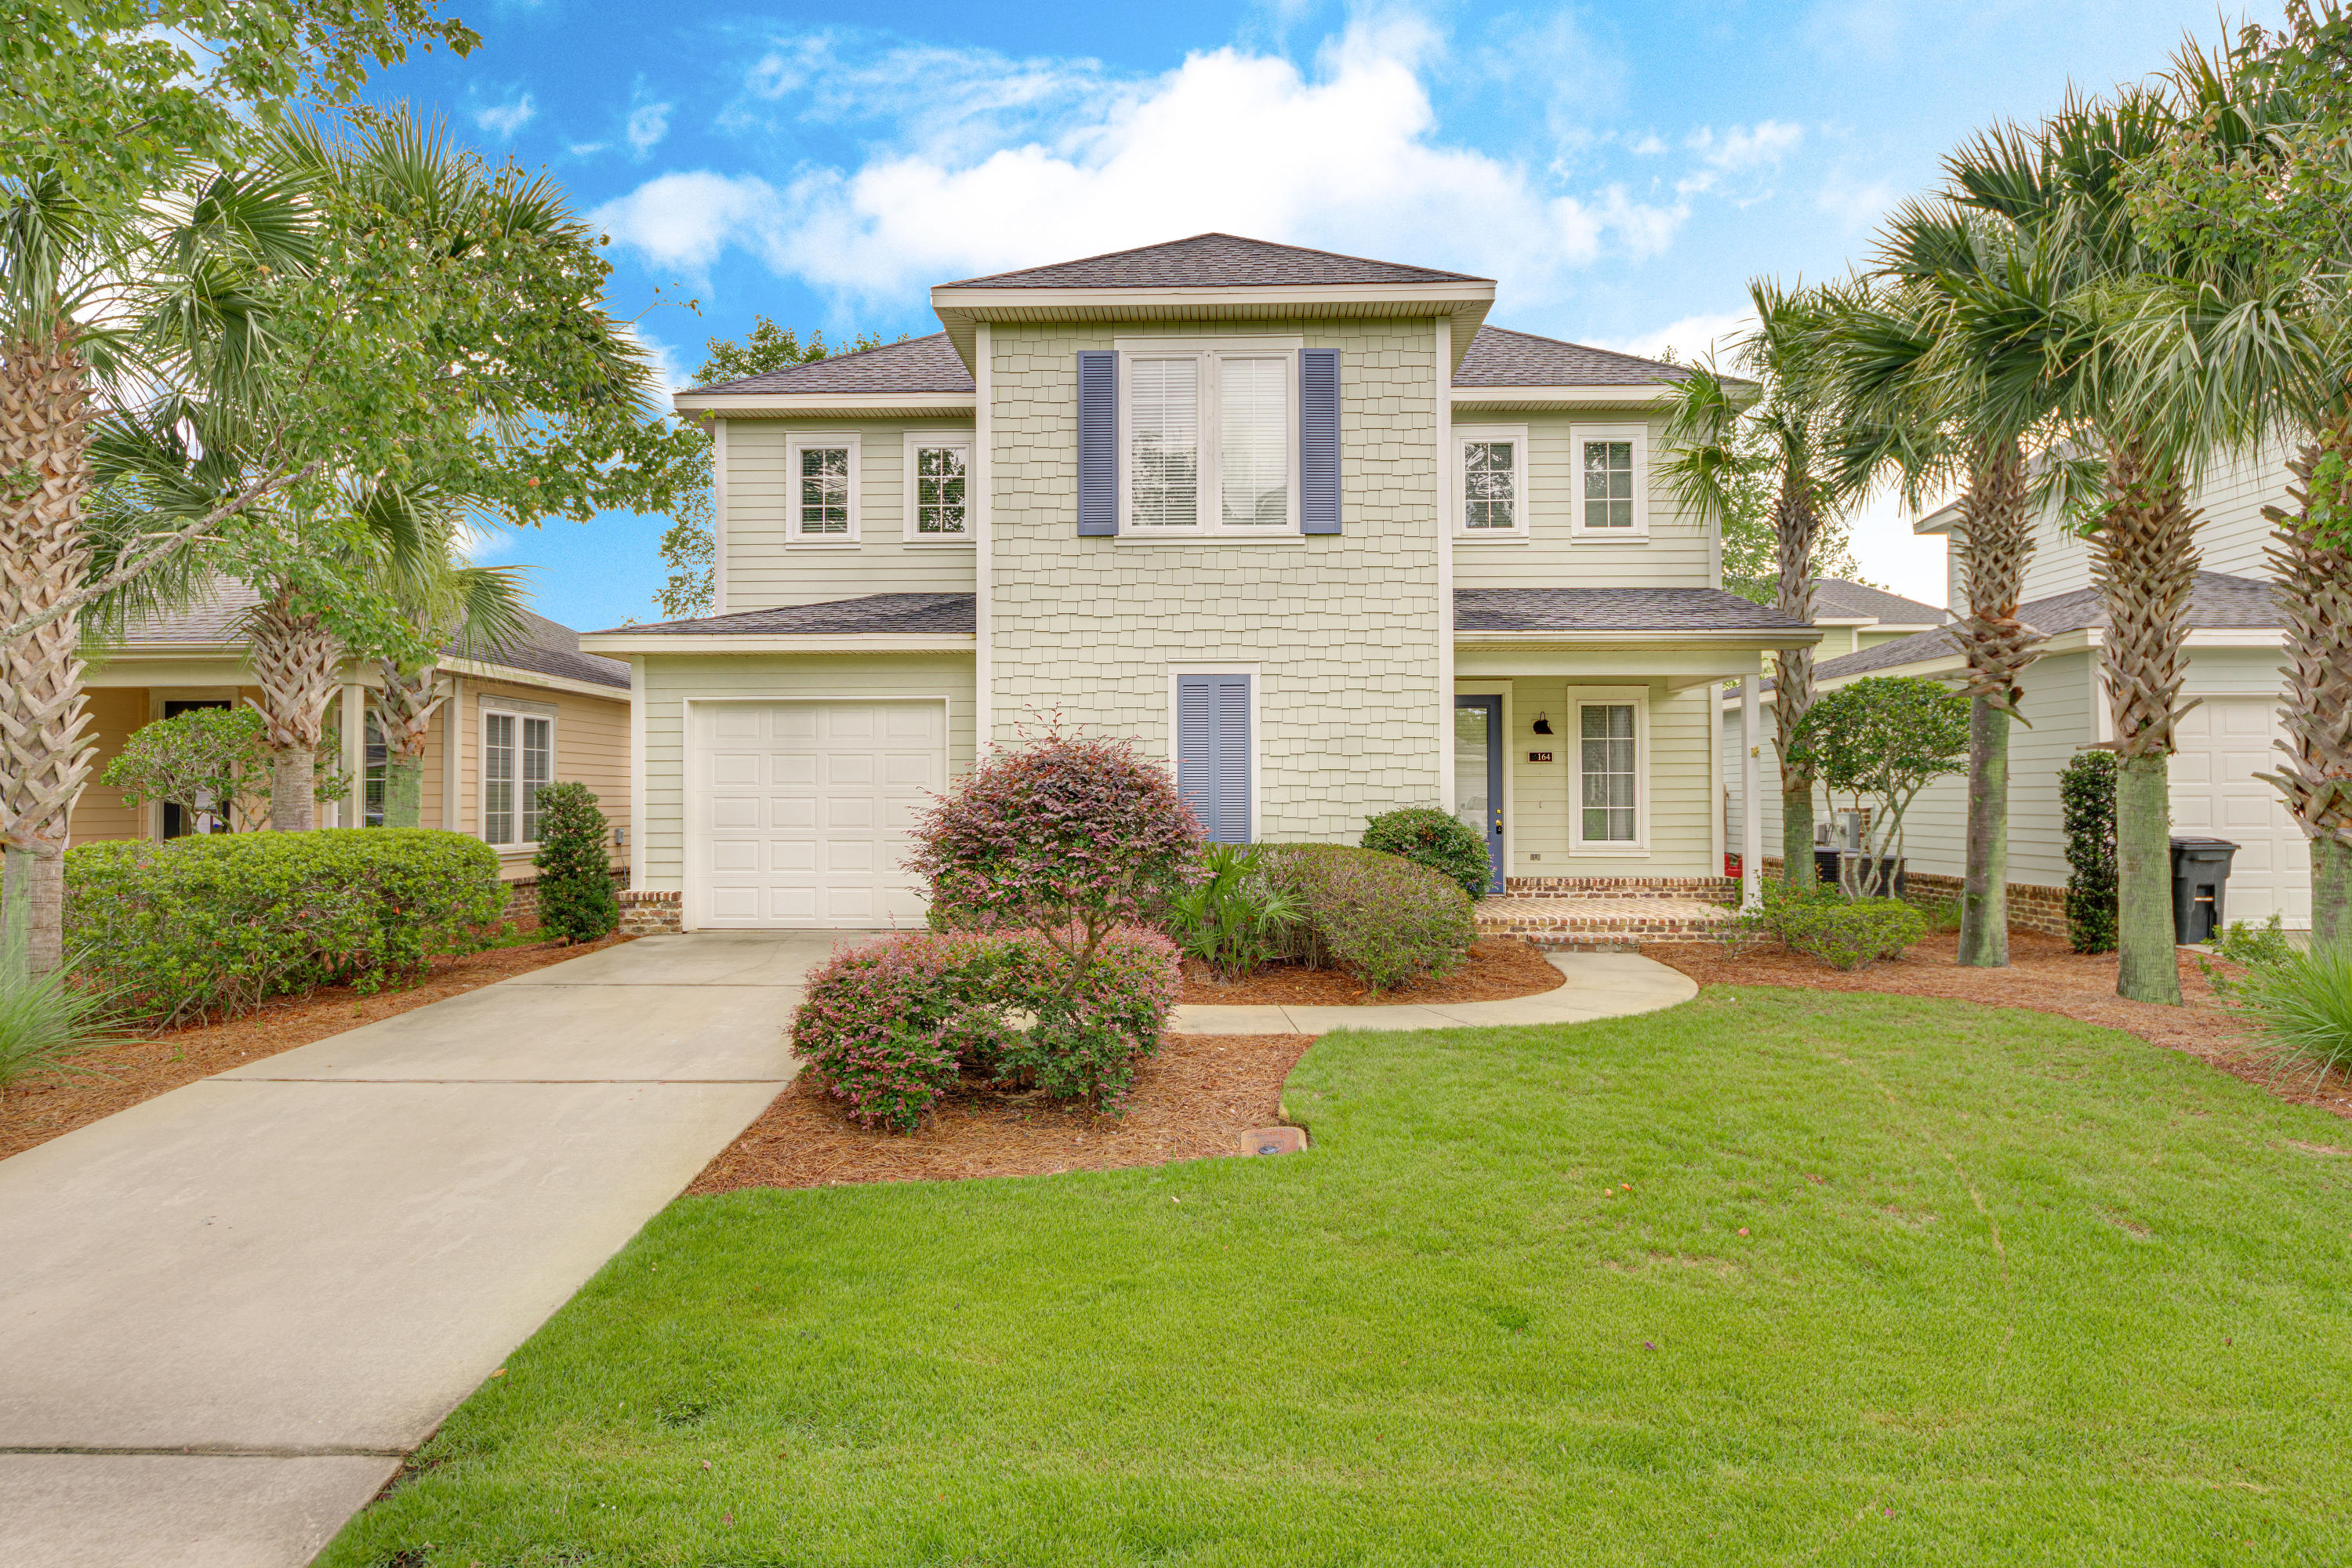 Photo of home for sale at 164 Zander, Santa Rosa Beach FL